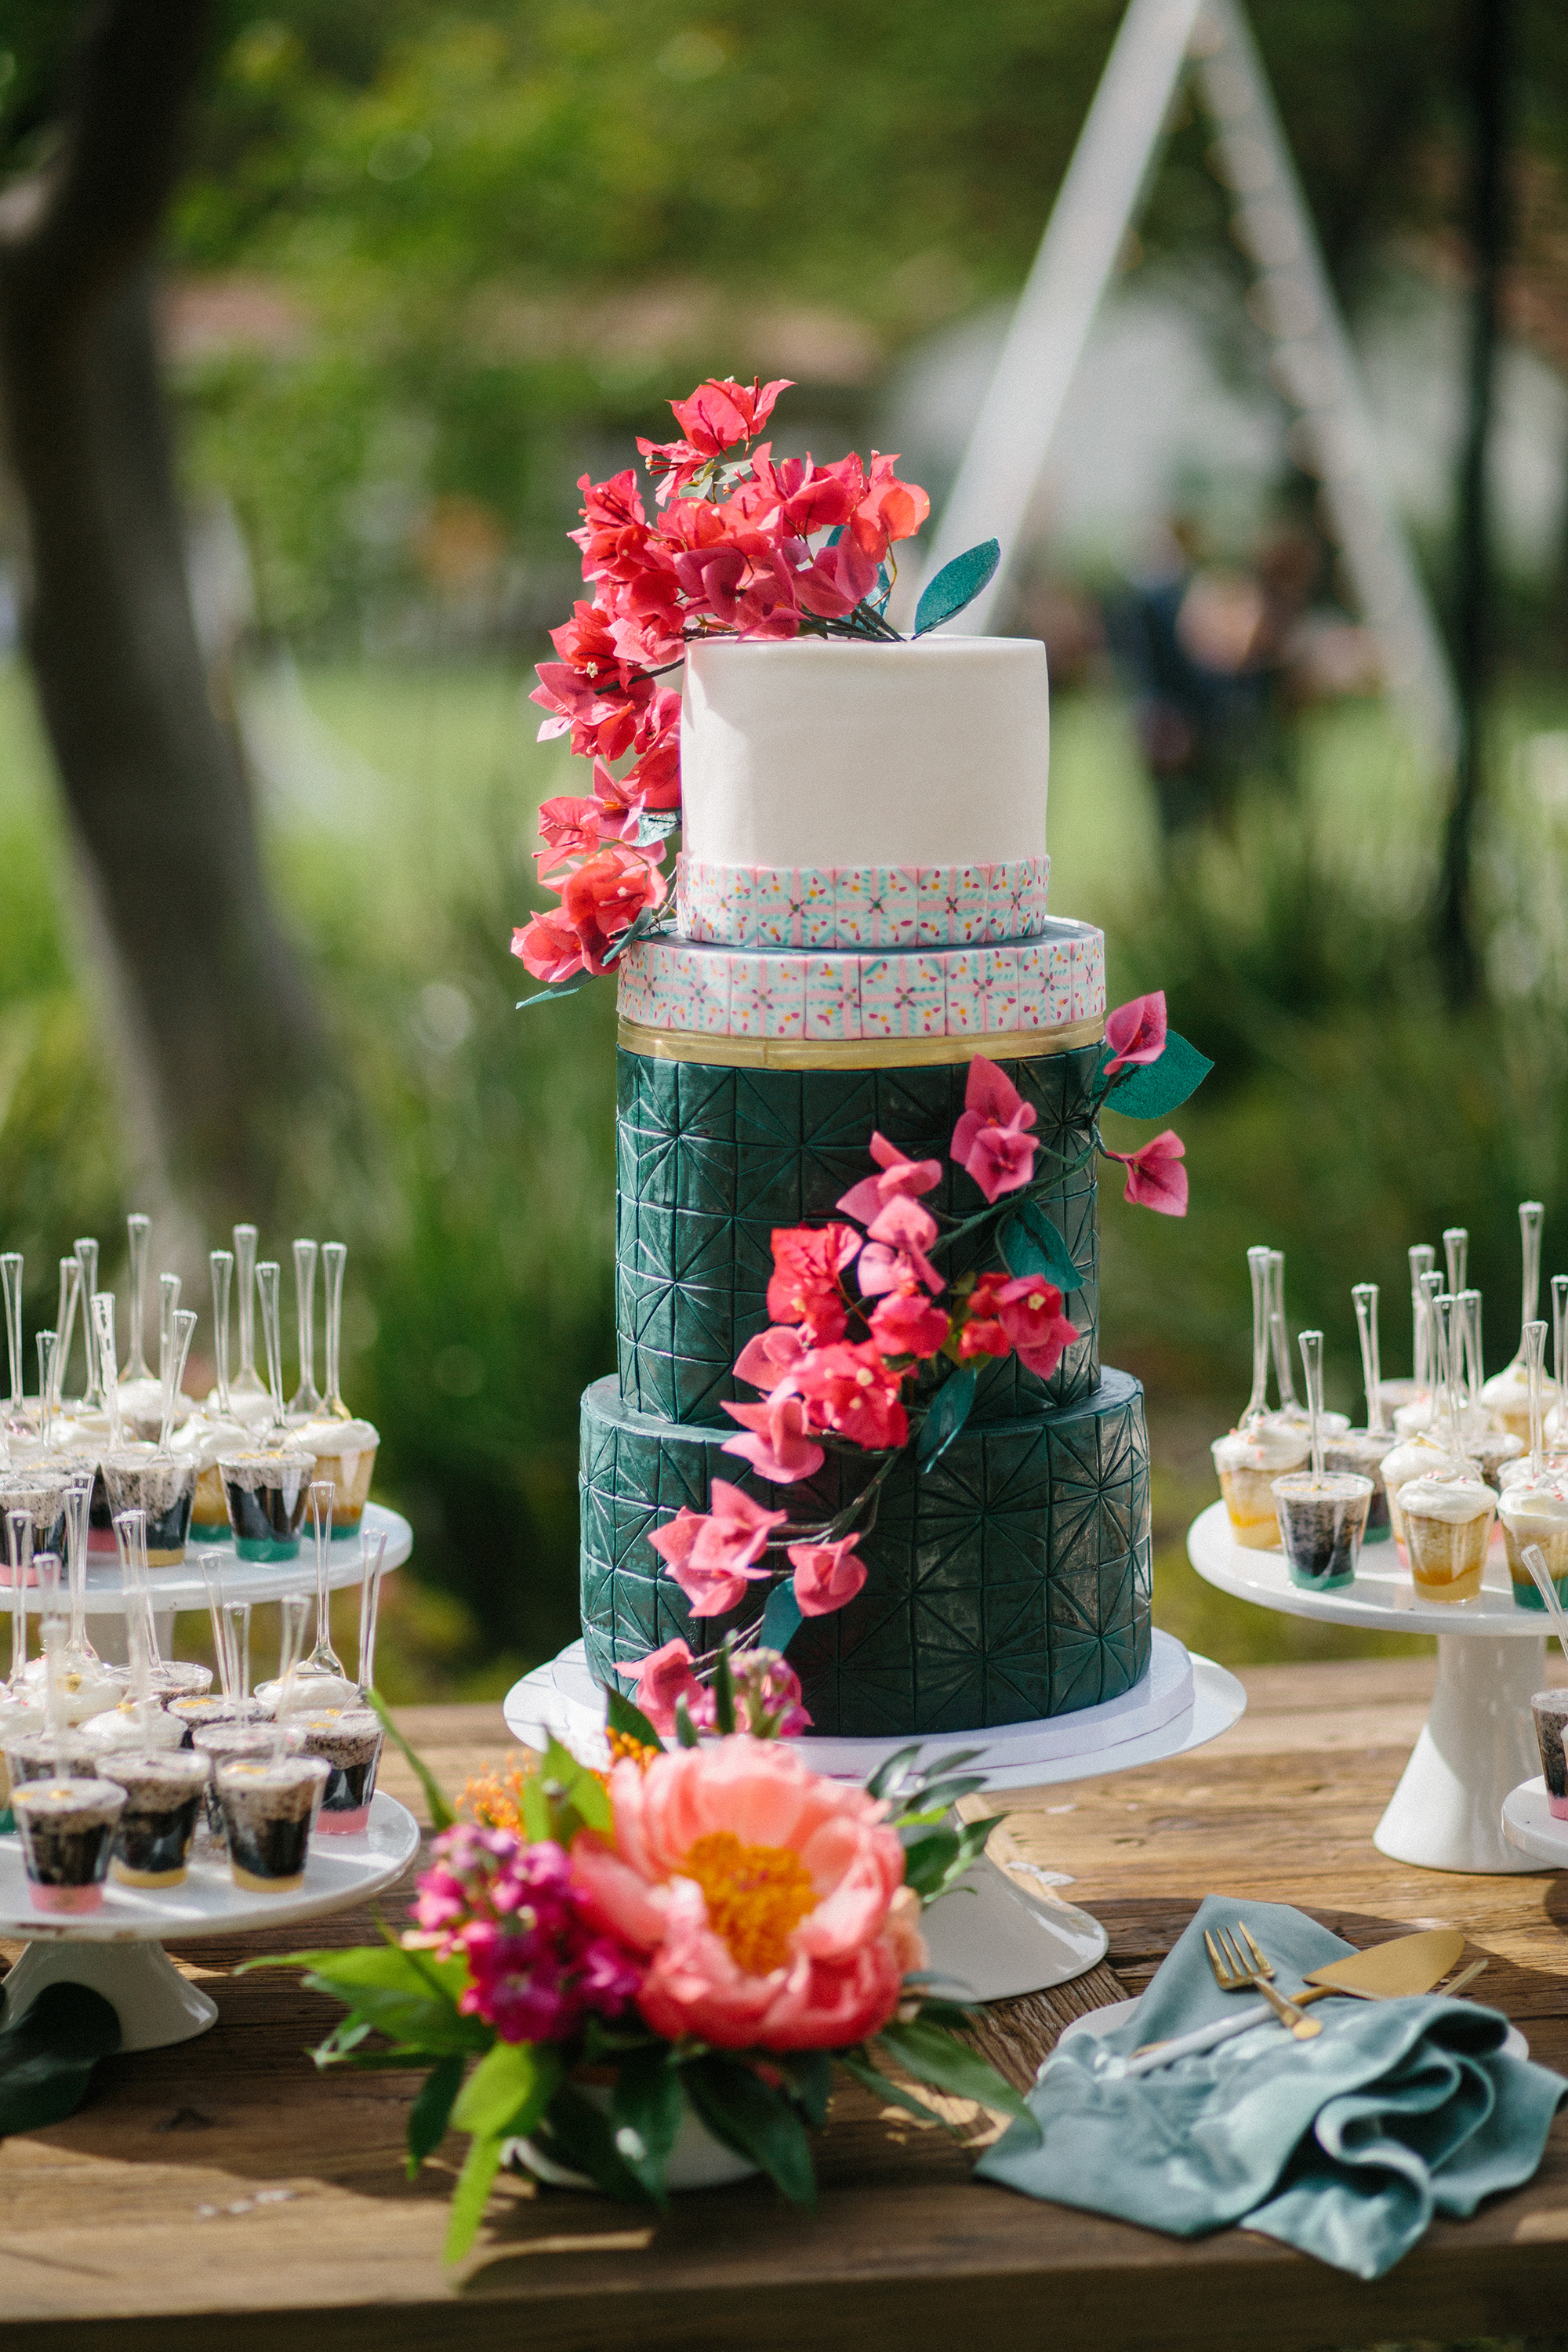 6 Things to Know If You Want a Colorful Wedding Cake